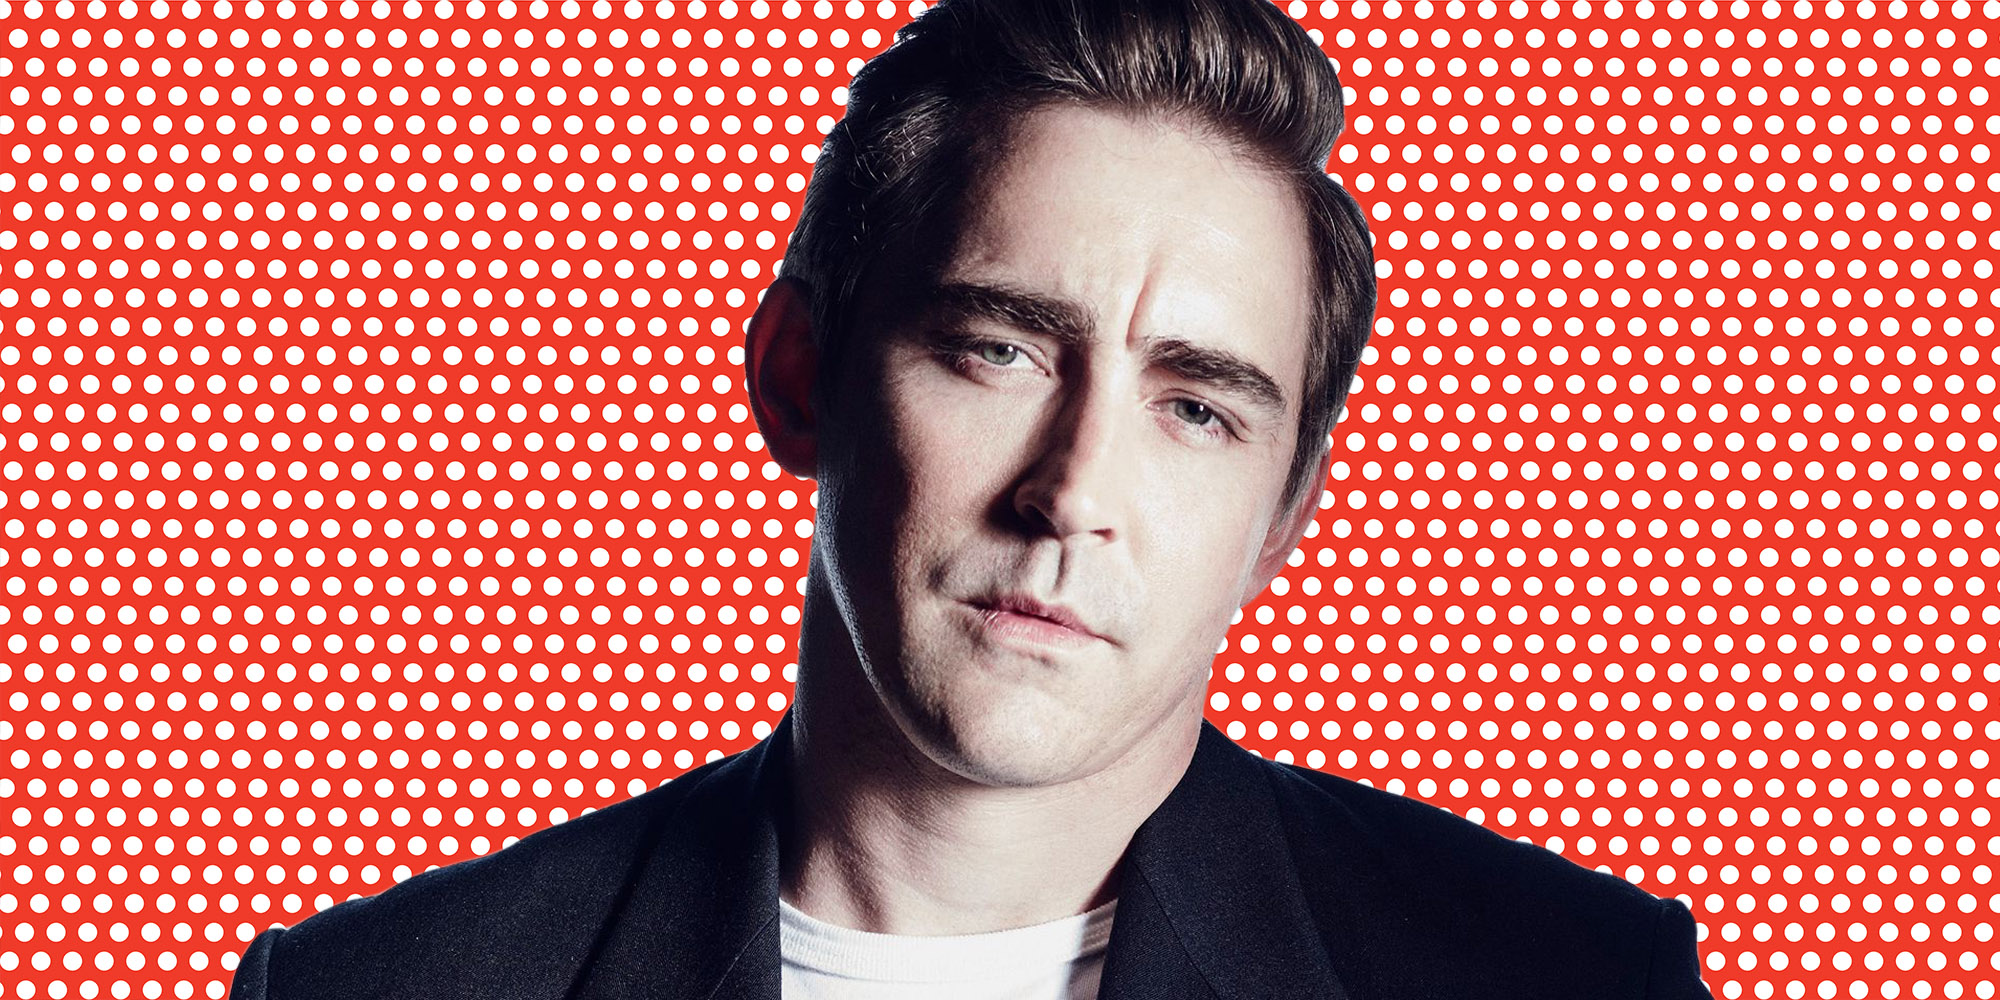 Lee Pace (Kinda) Comes Out and Sounds Off on the Importance of Gay Actors Playing Gay Roles